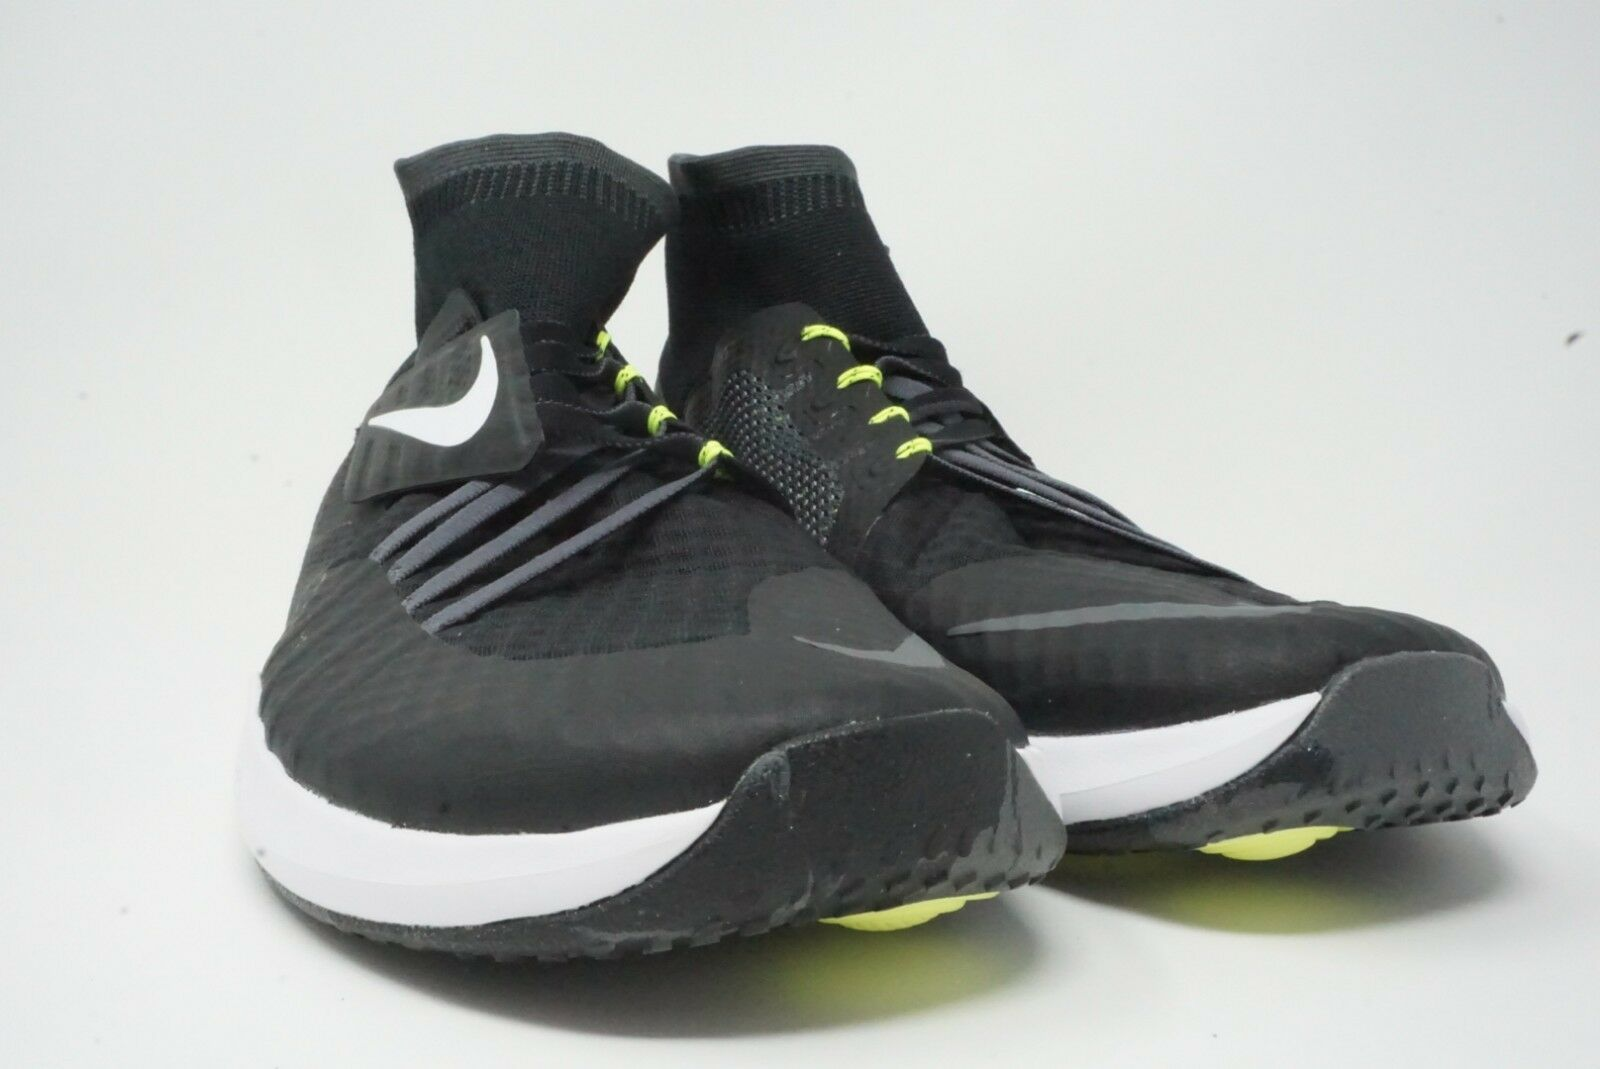 1640bcaf20a5 ... Nike Flylon Flylon Flylon Train Dynamic Training Shoes Black White  Green Size 12 e7e21d ...